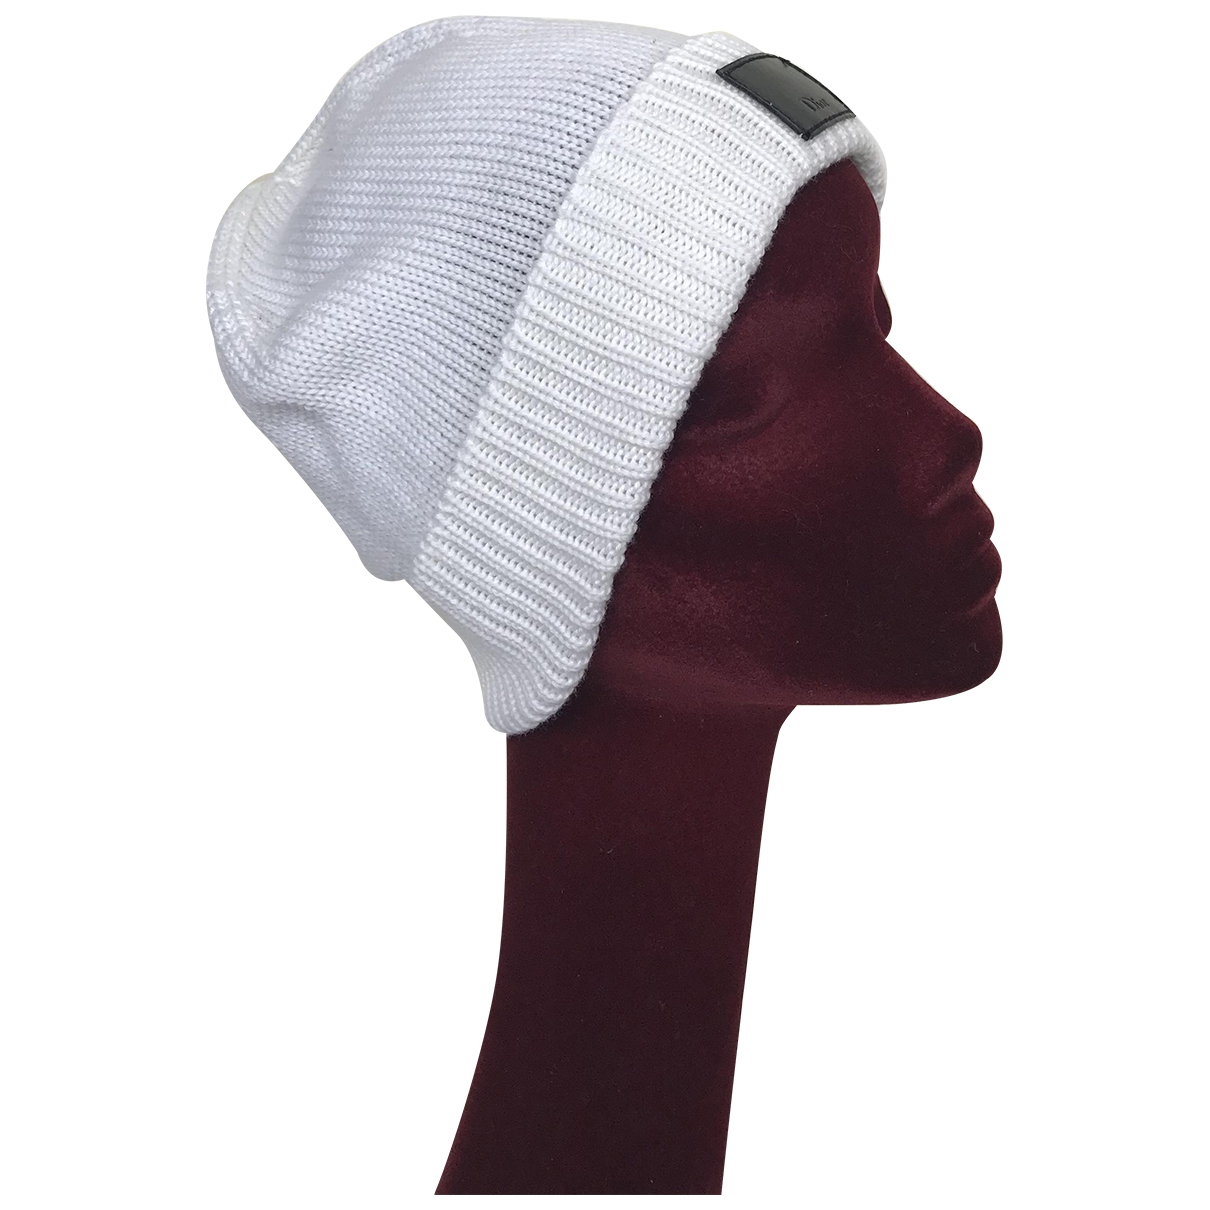 Dior Homme \N White Wool hat & pull on hat for Men L International